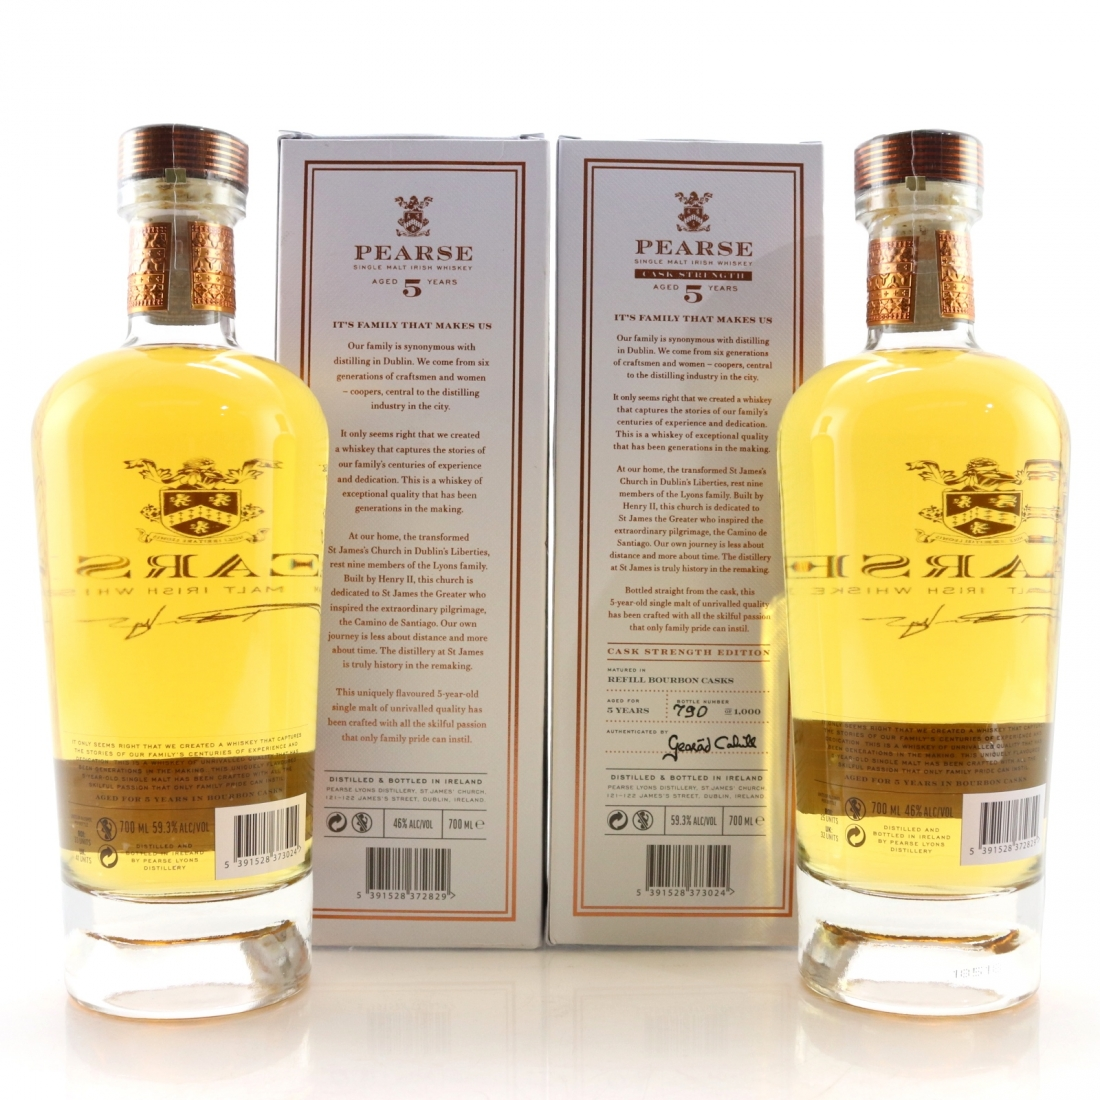 Pearse 5 Year Old Single Malt Irish Whiskey 46% and Cask Strength 59.3% 2 x 70cl